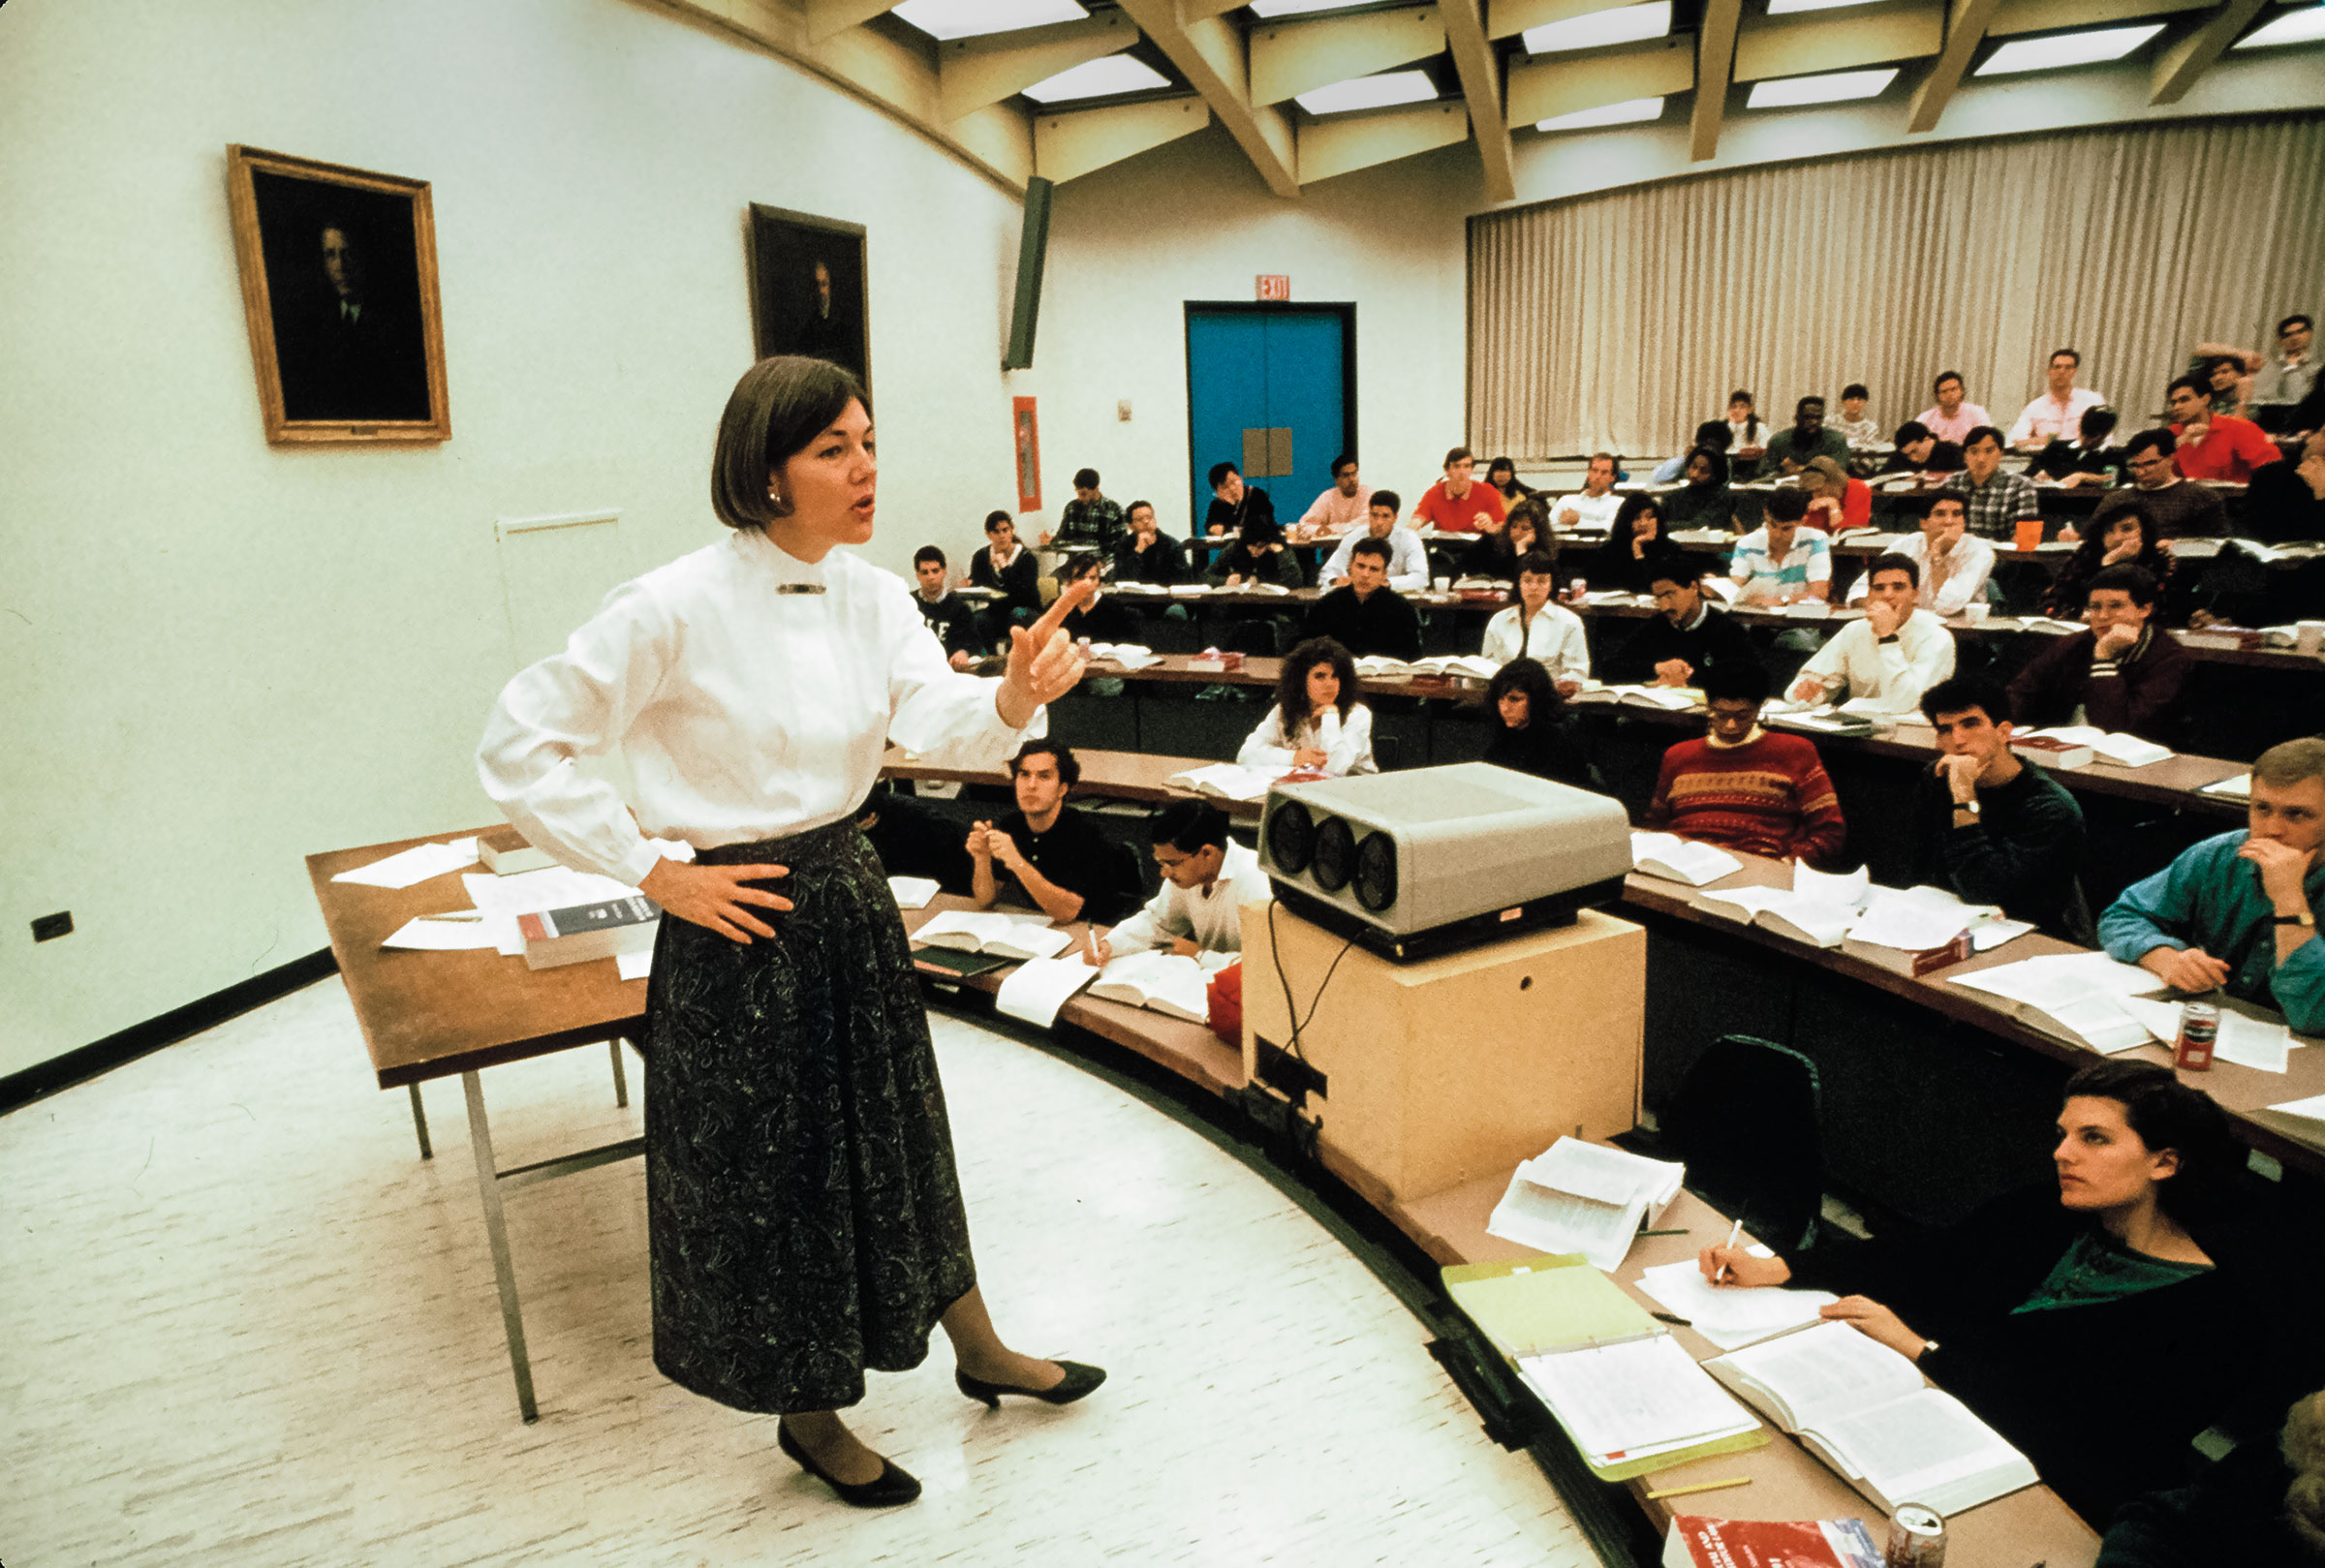 American academic (and future US Senator) Professor Elizabeth Warren teaches an unspecified class at University of Pennsylvania Law School, Philadelphia, Pennsylvania, early 1990s. (Photo by Leif Skoogfors/Corbis via Getty Images)